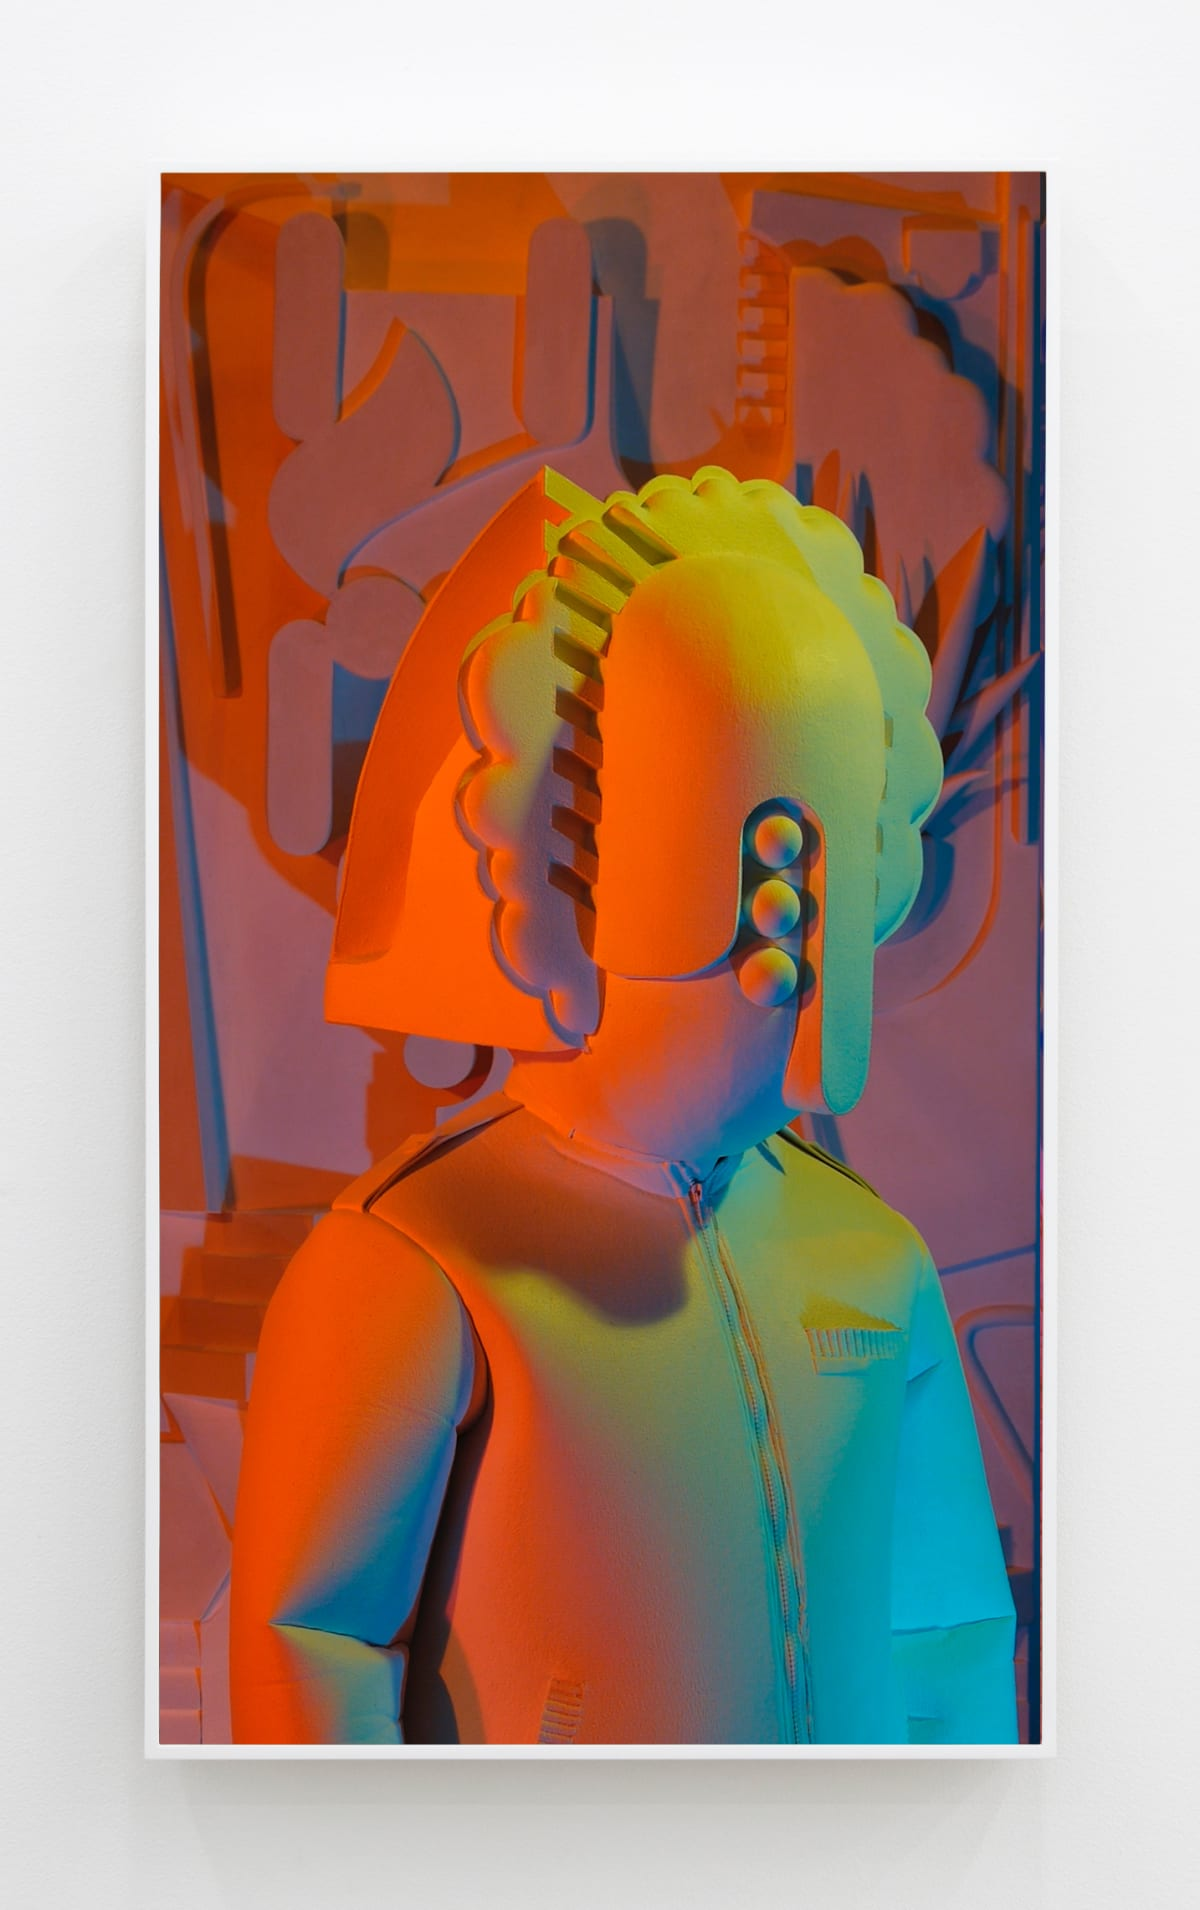 Brian Bress, Members Only (colorpicker), 2017